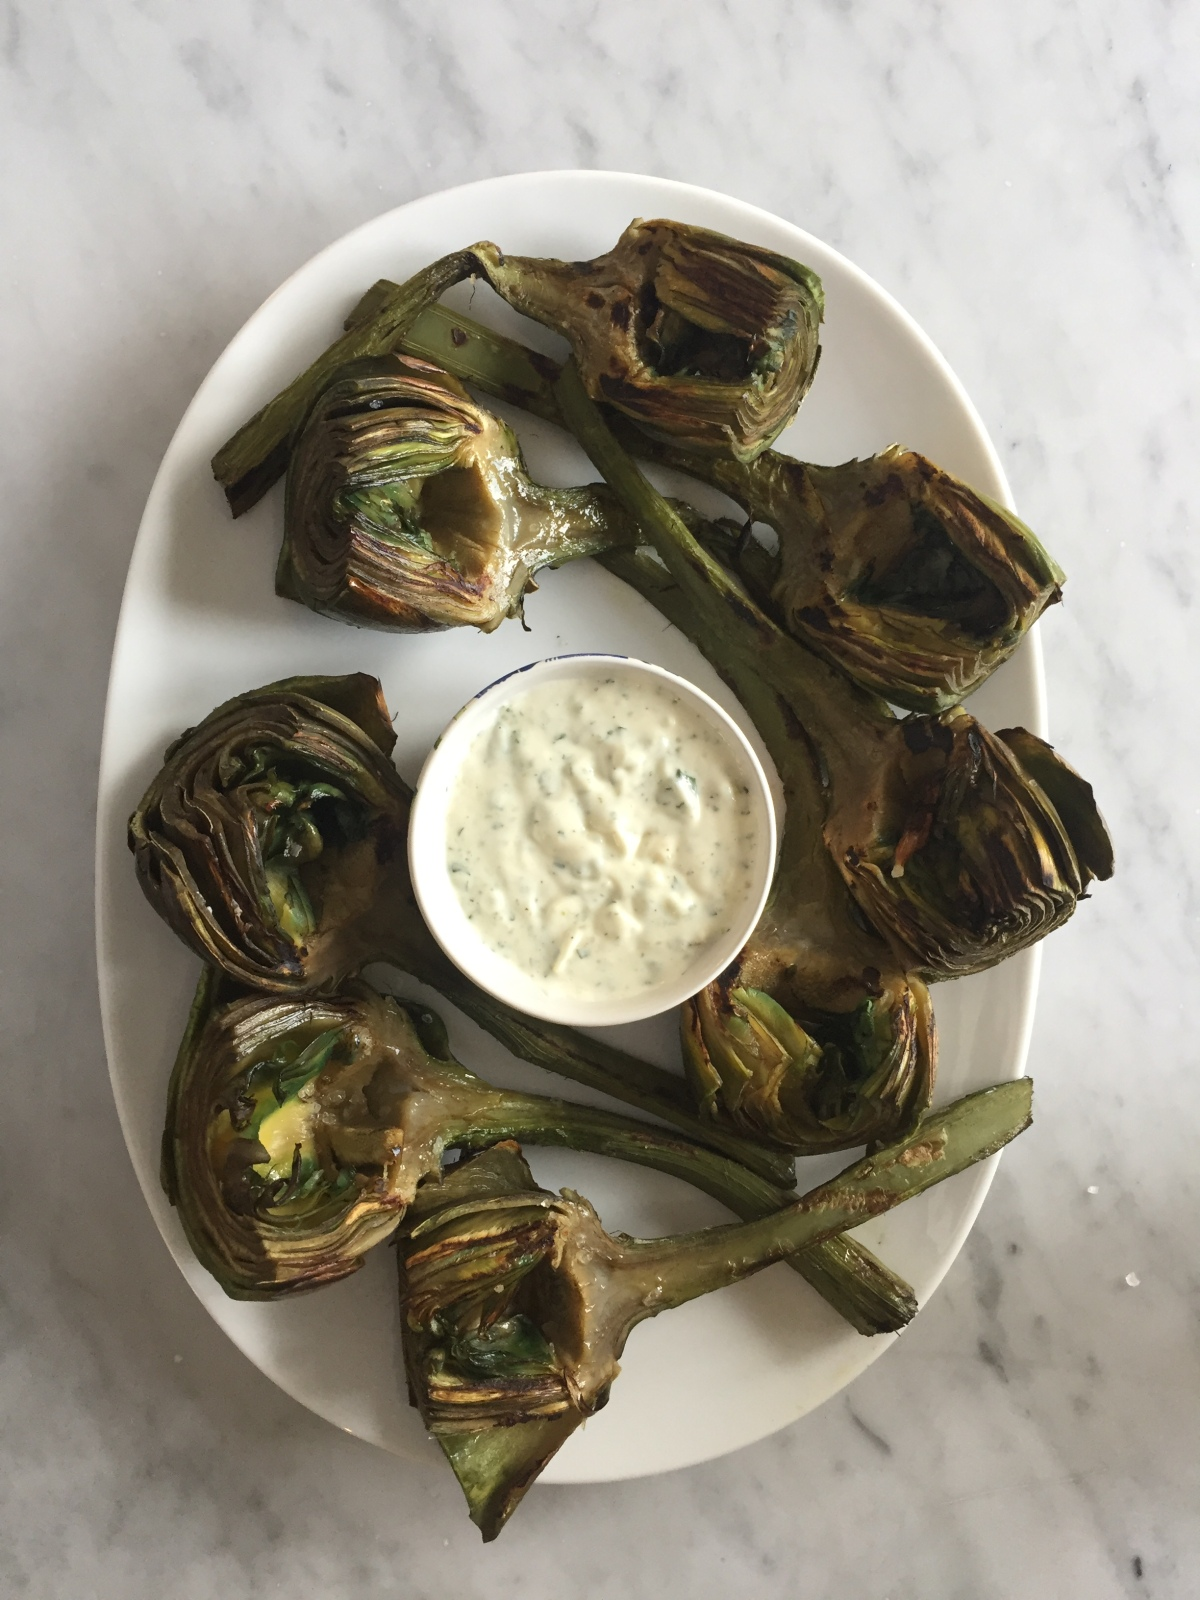 Grilled Roman Artichokes with Lemon, Roasted Garlic Mayonnaise